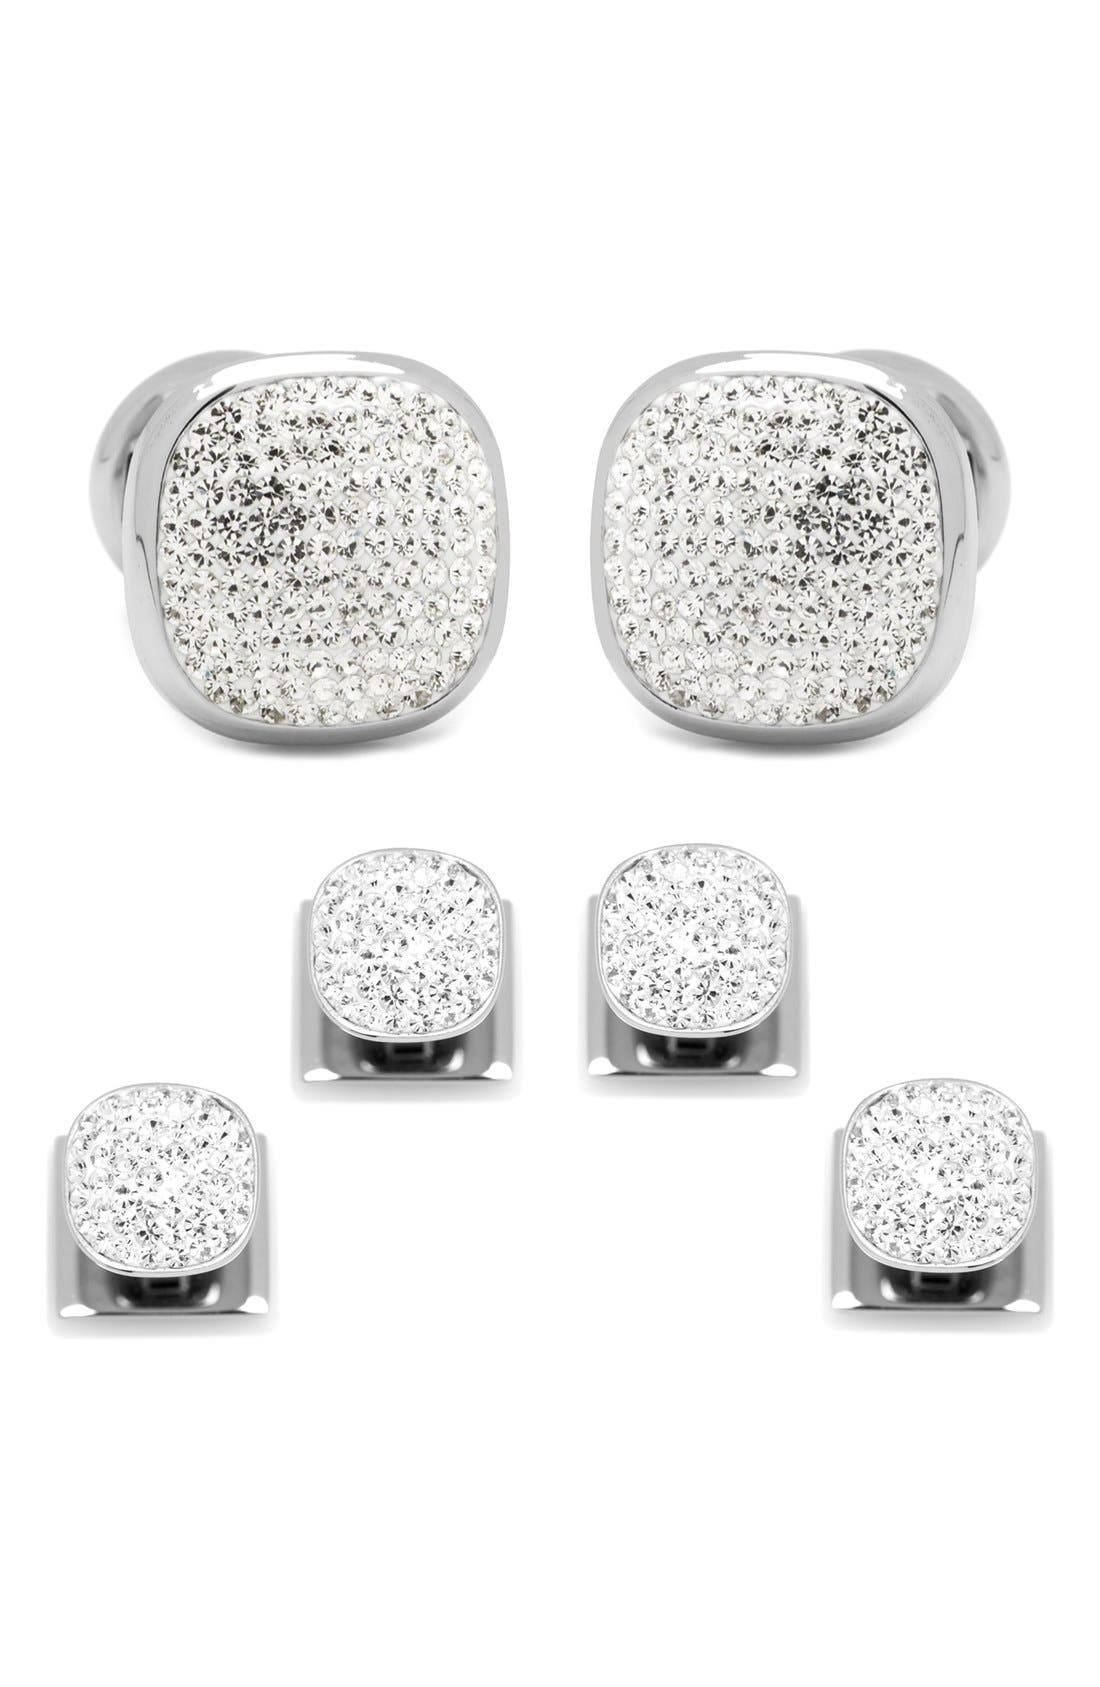 White Pave Crystal Shirt Studs & Cuff Links,                         Main,                         color, White